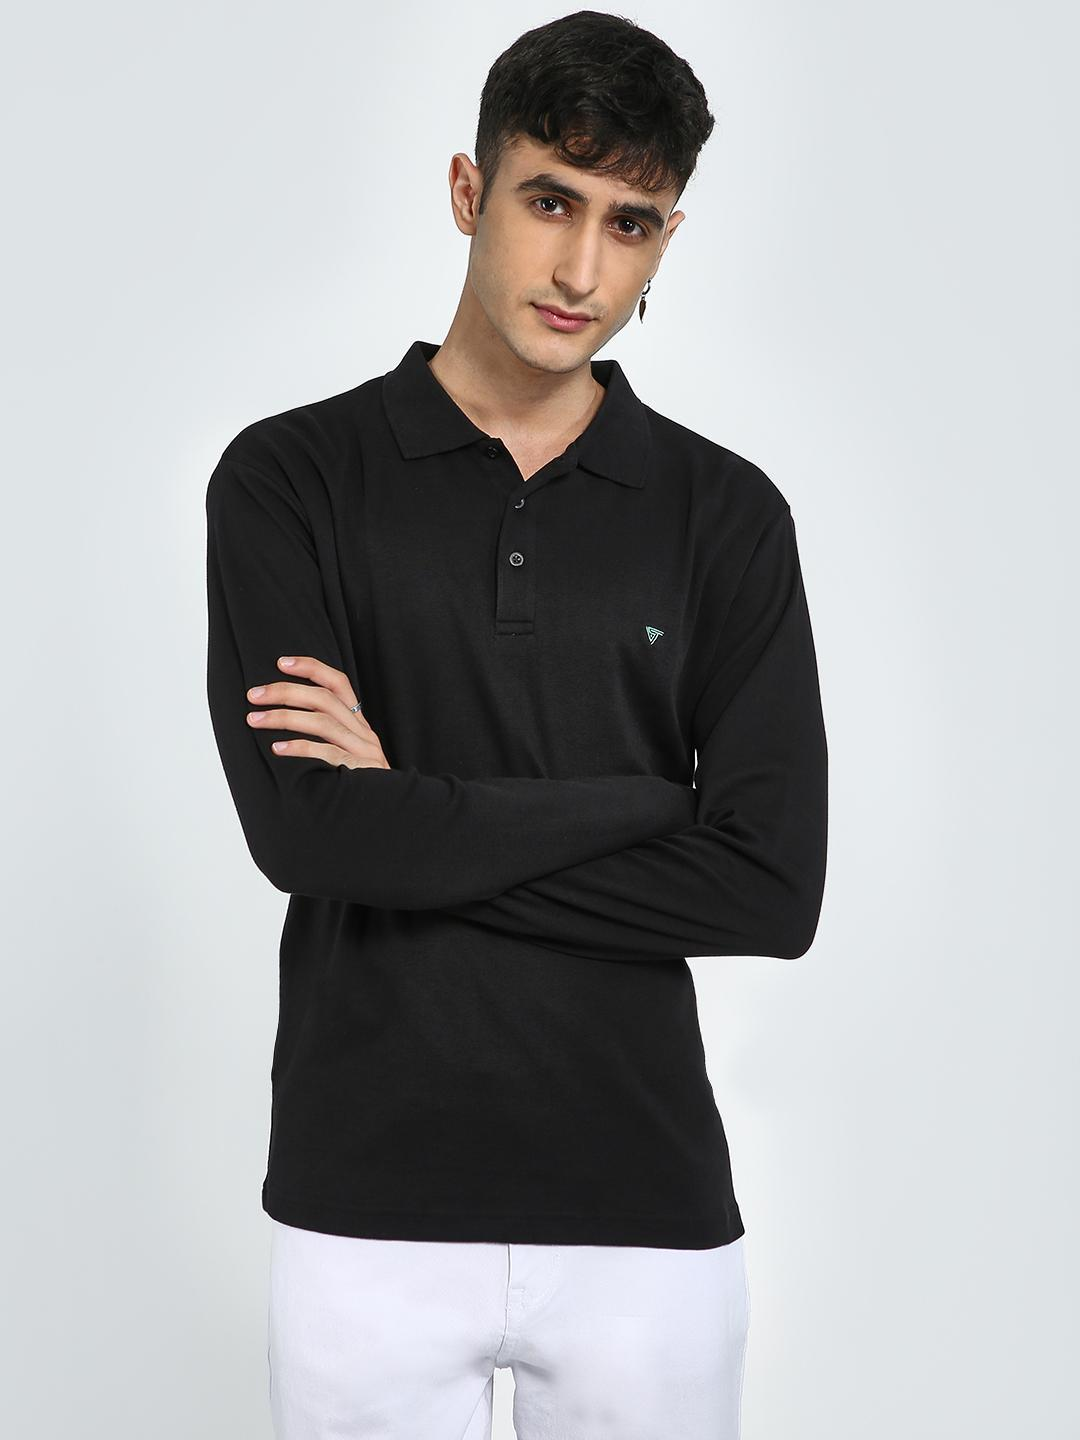 Blue Saint Black Basic Long Sleeve Polo Shirt 1